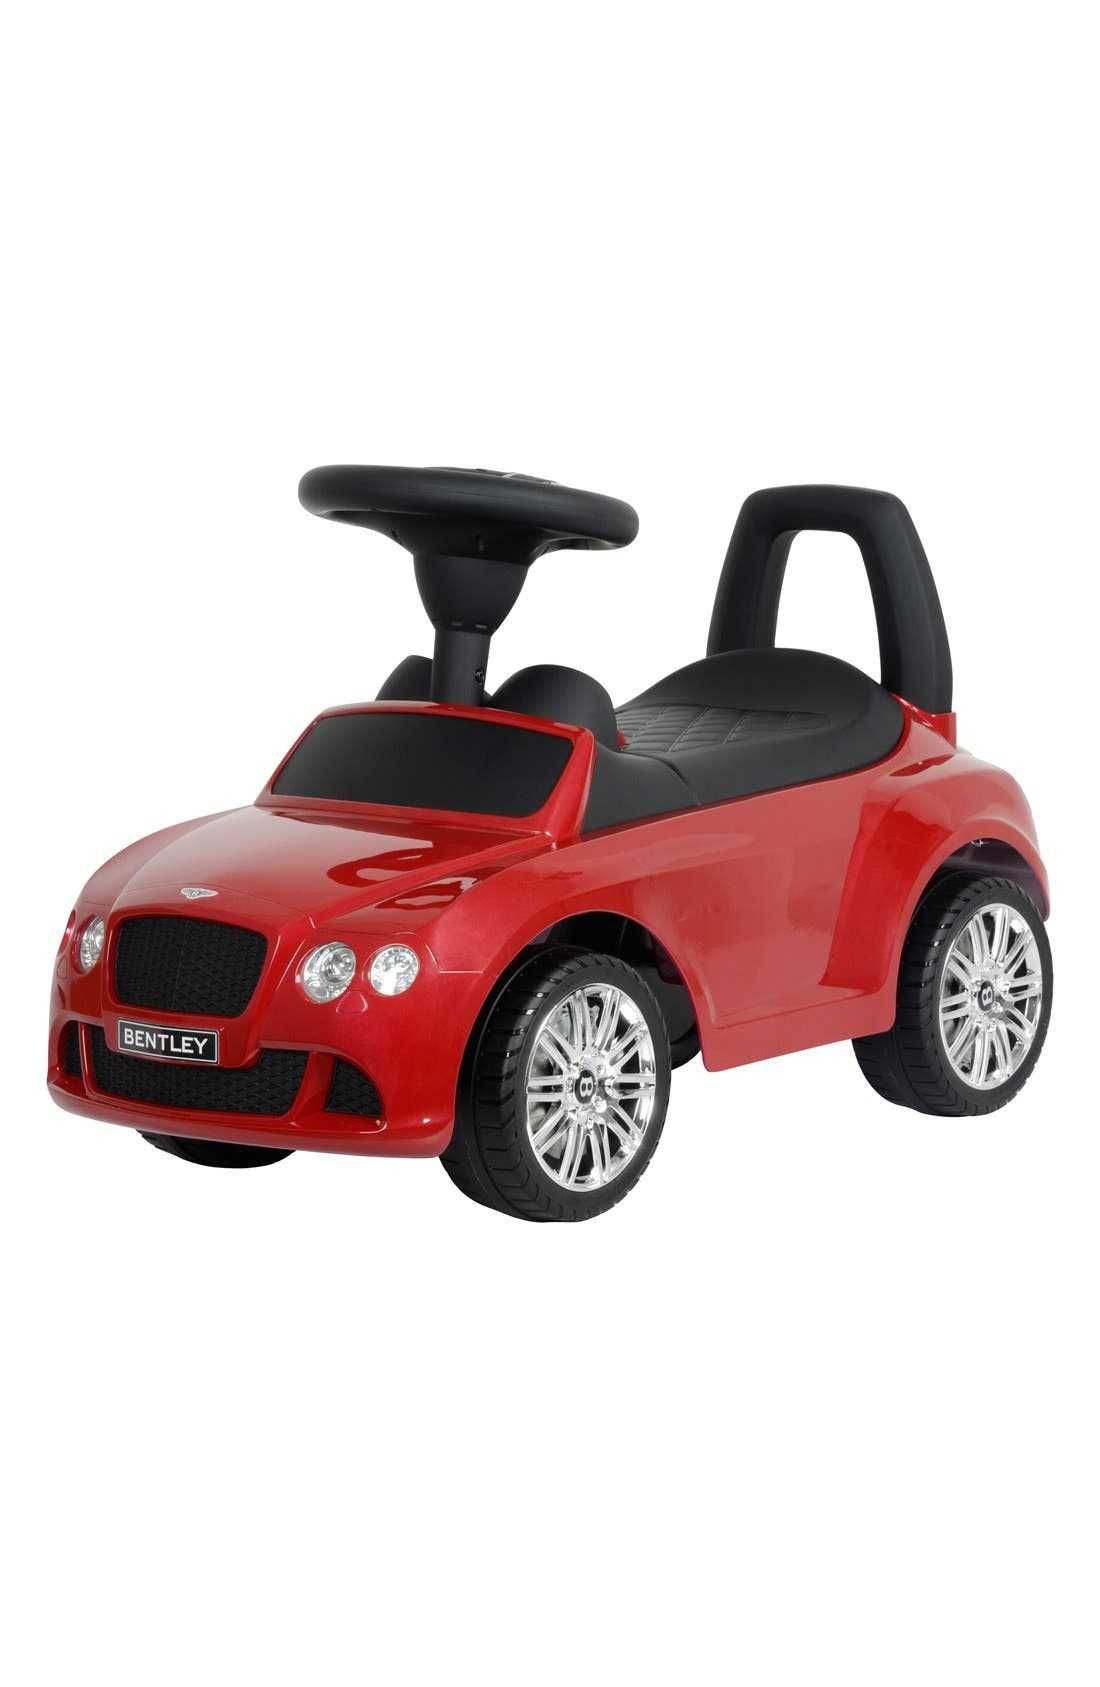 'Bentley' Ride-On Push Car,                             Main thumbnail 1, color,